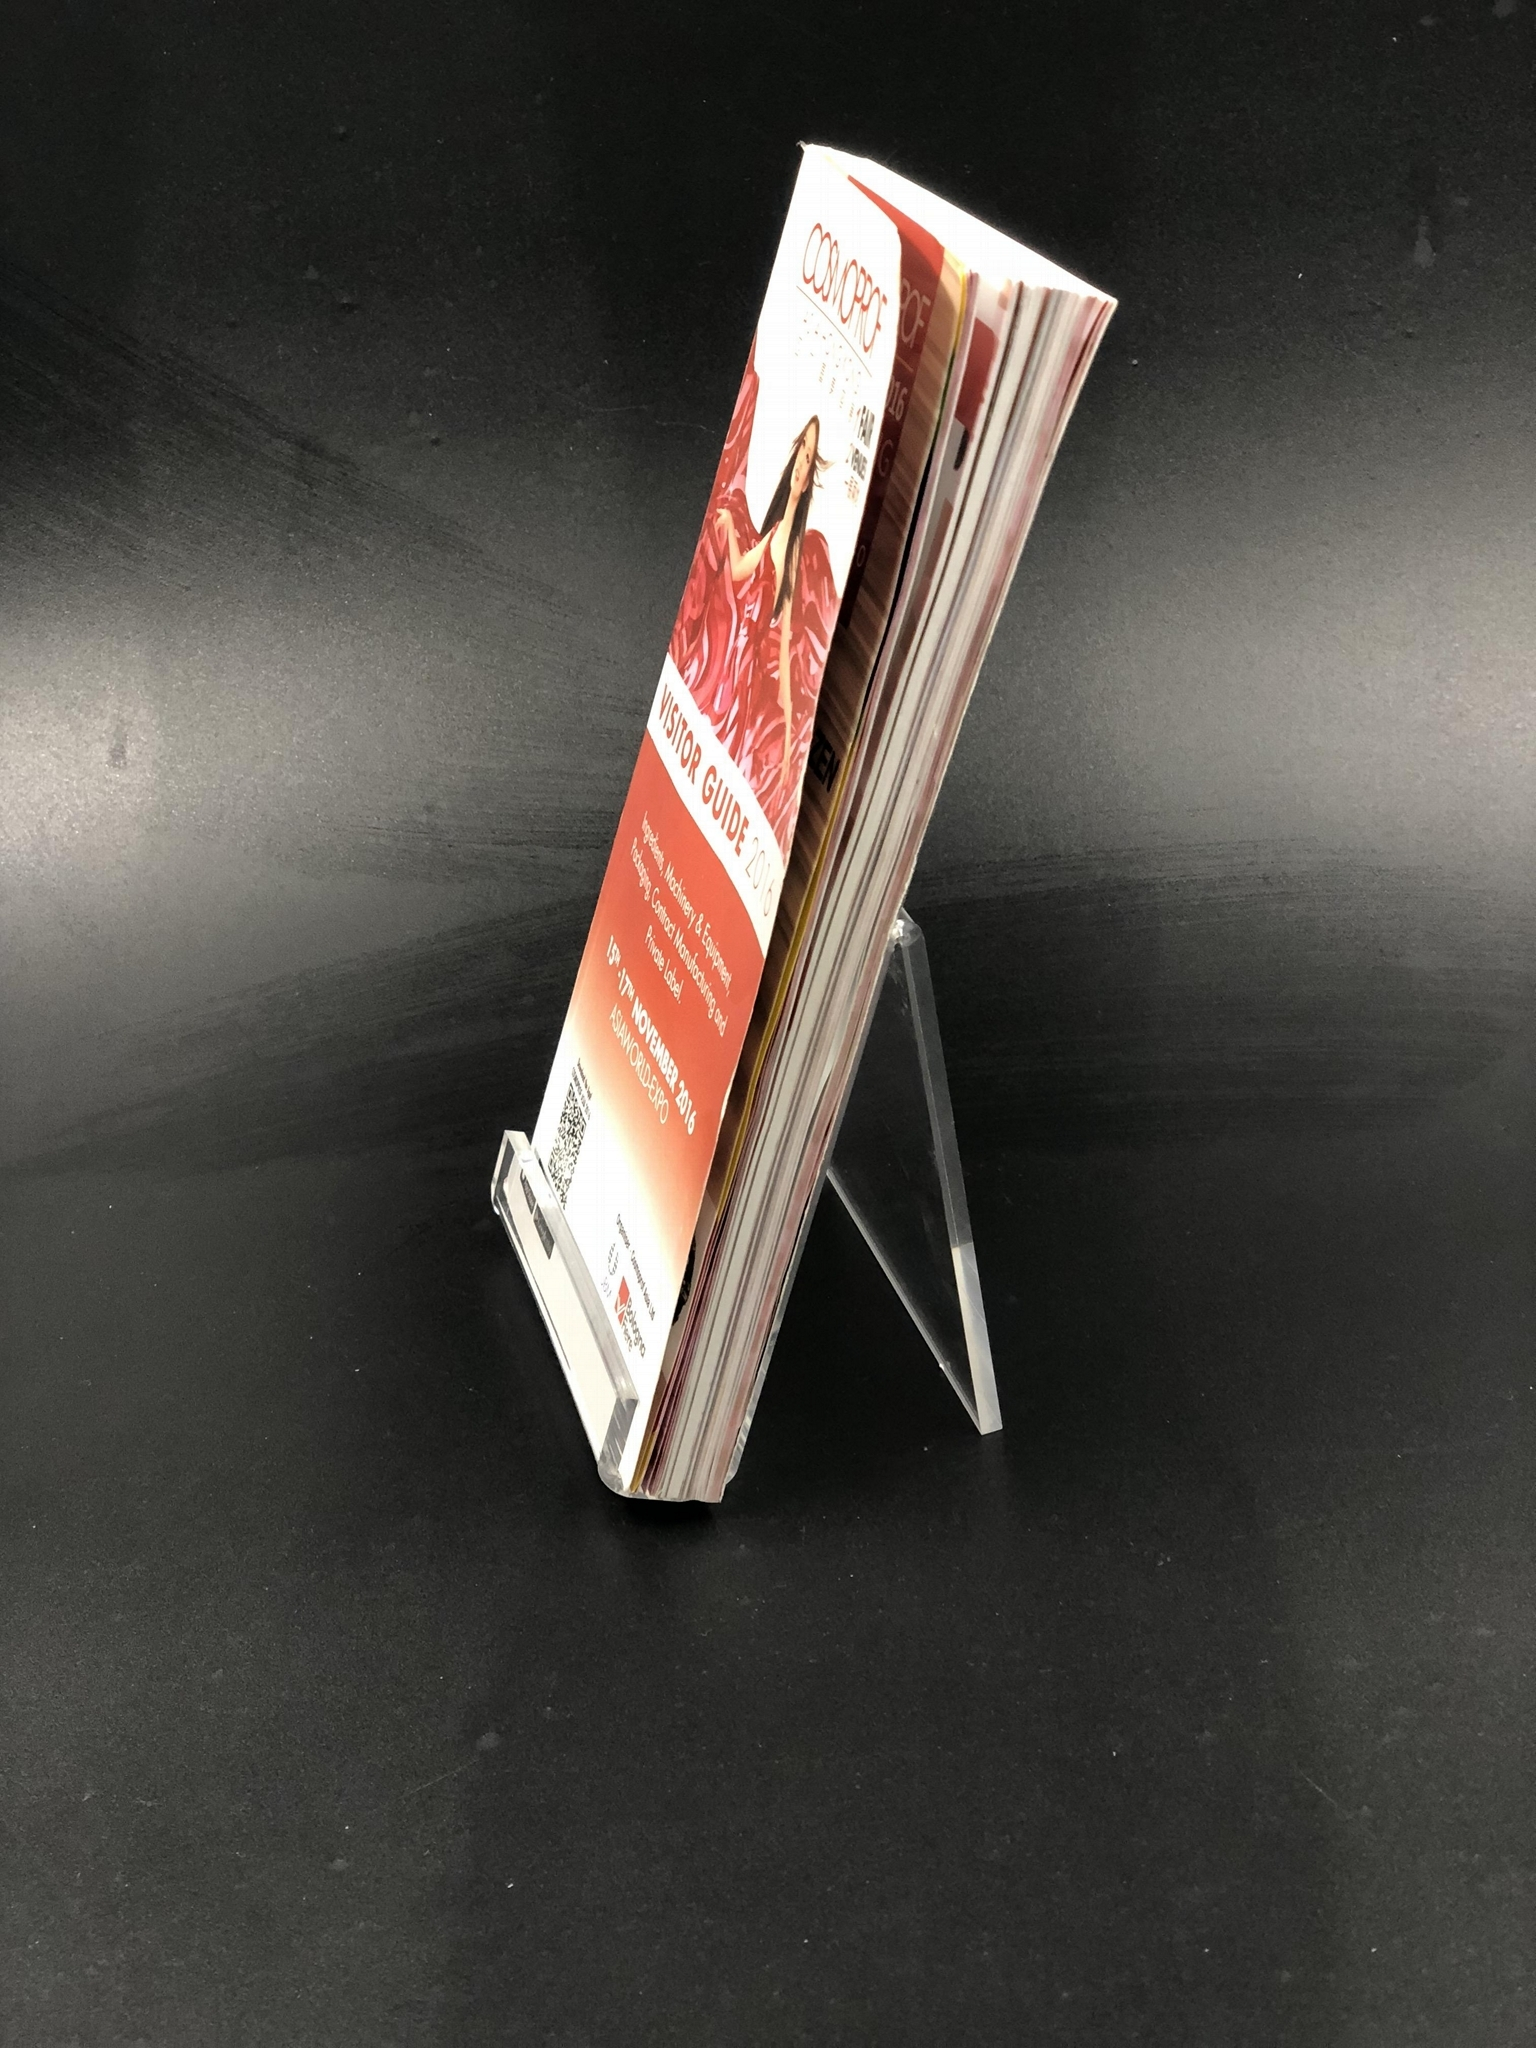 acrylic book stand,Acrylic Easel Book Holder Rack Stand